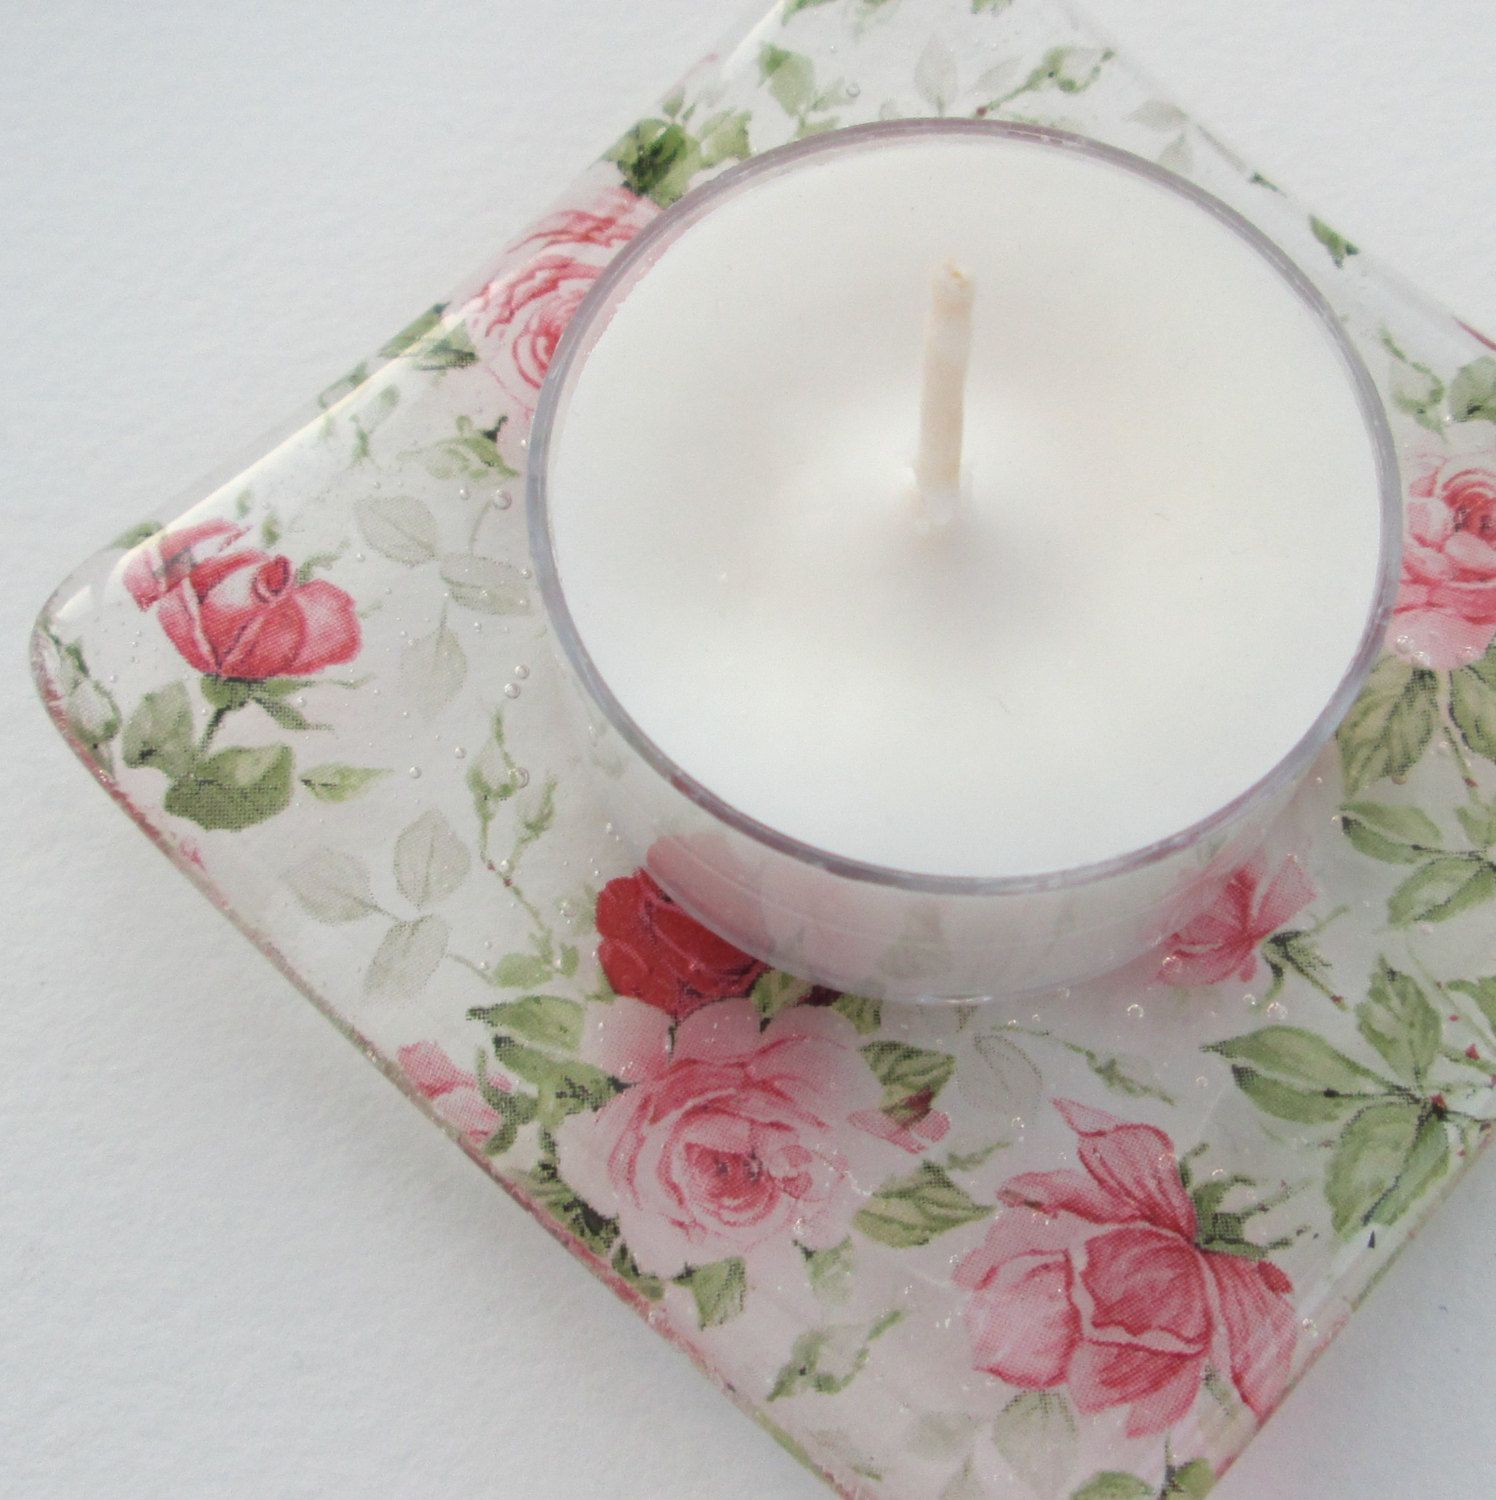 change holder shallow glass bowl spoon rest jewelry tray tealight holder candle dish teabag saucer Roses design glass trinket dish